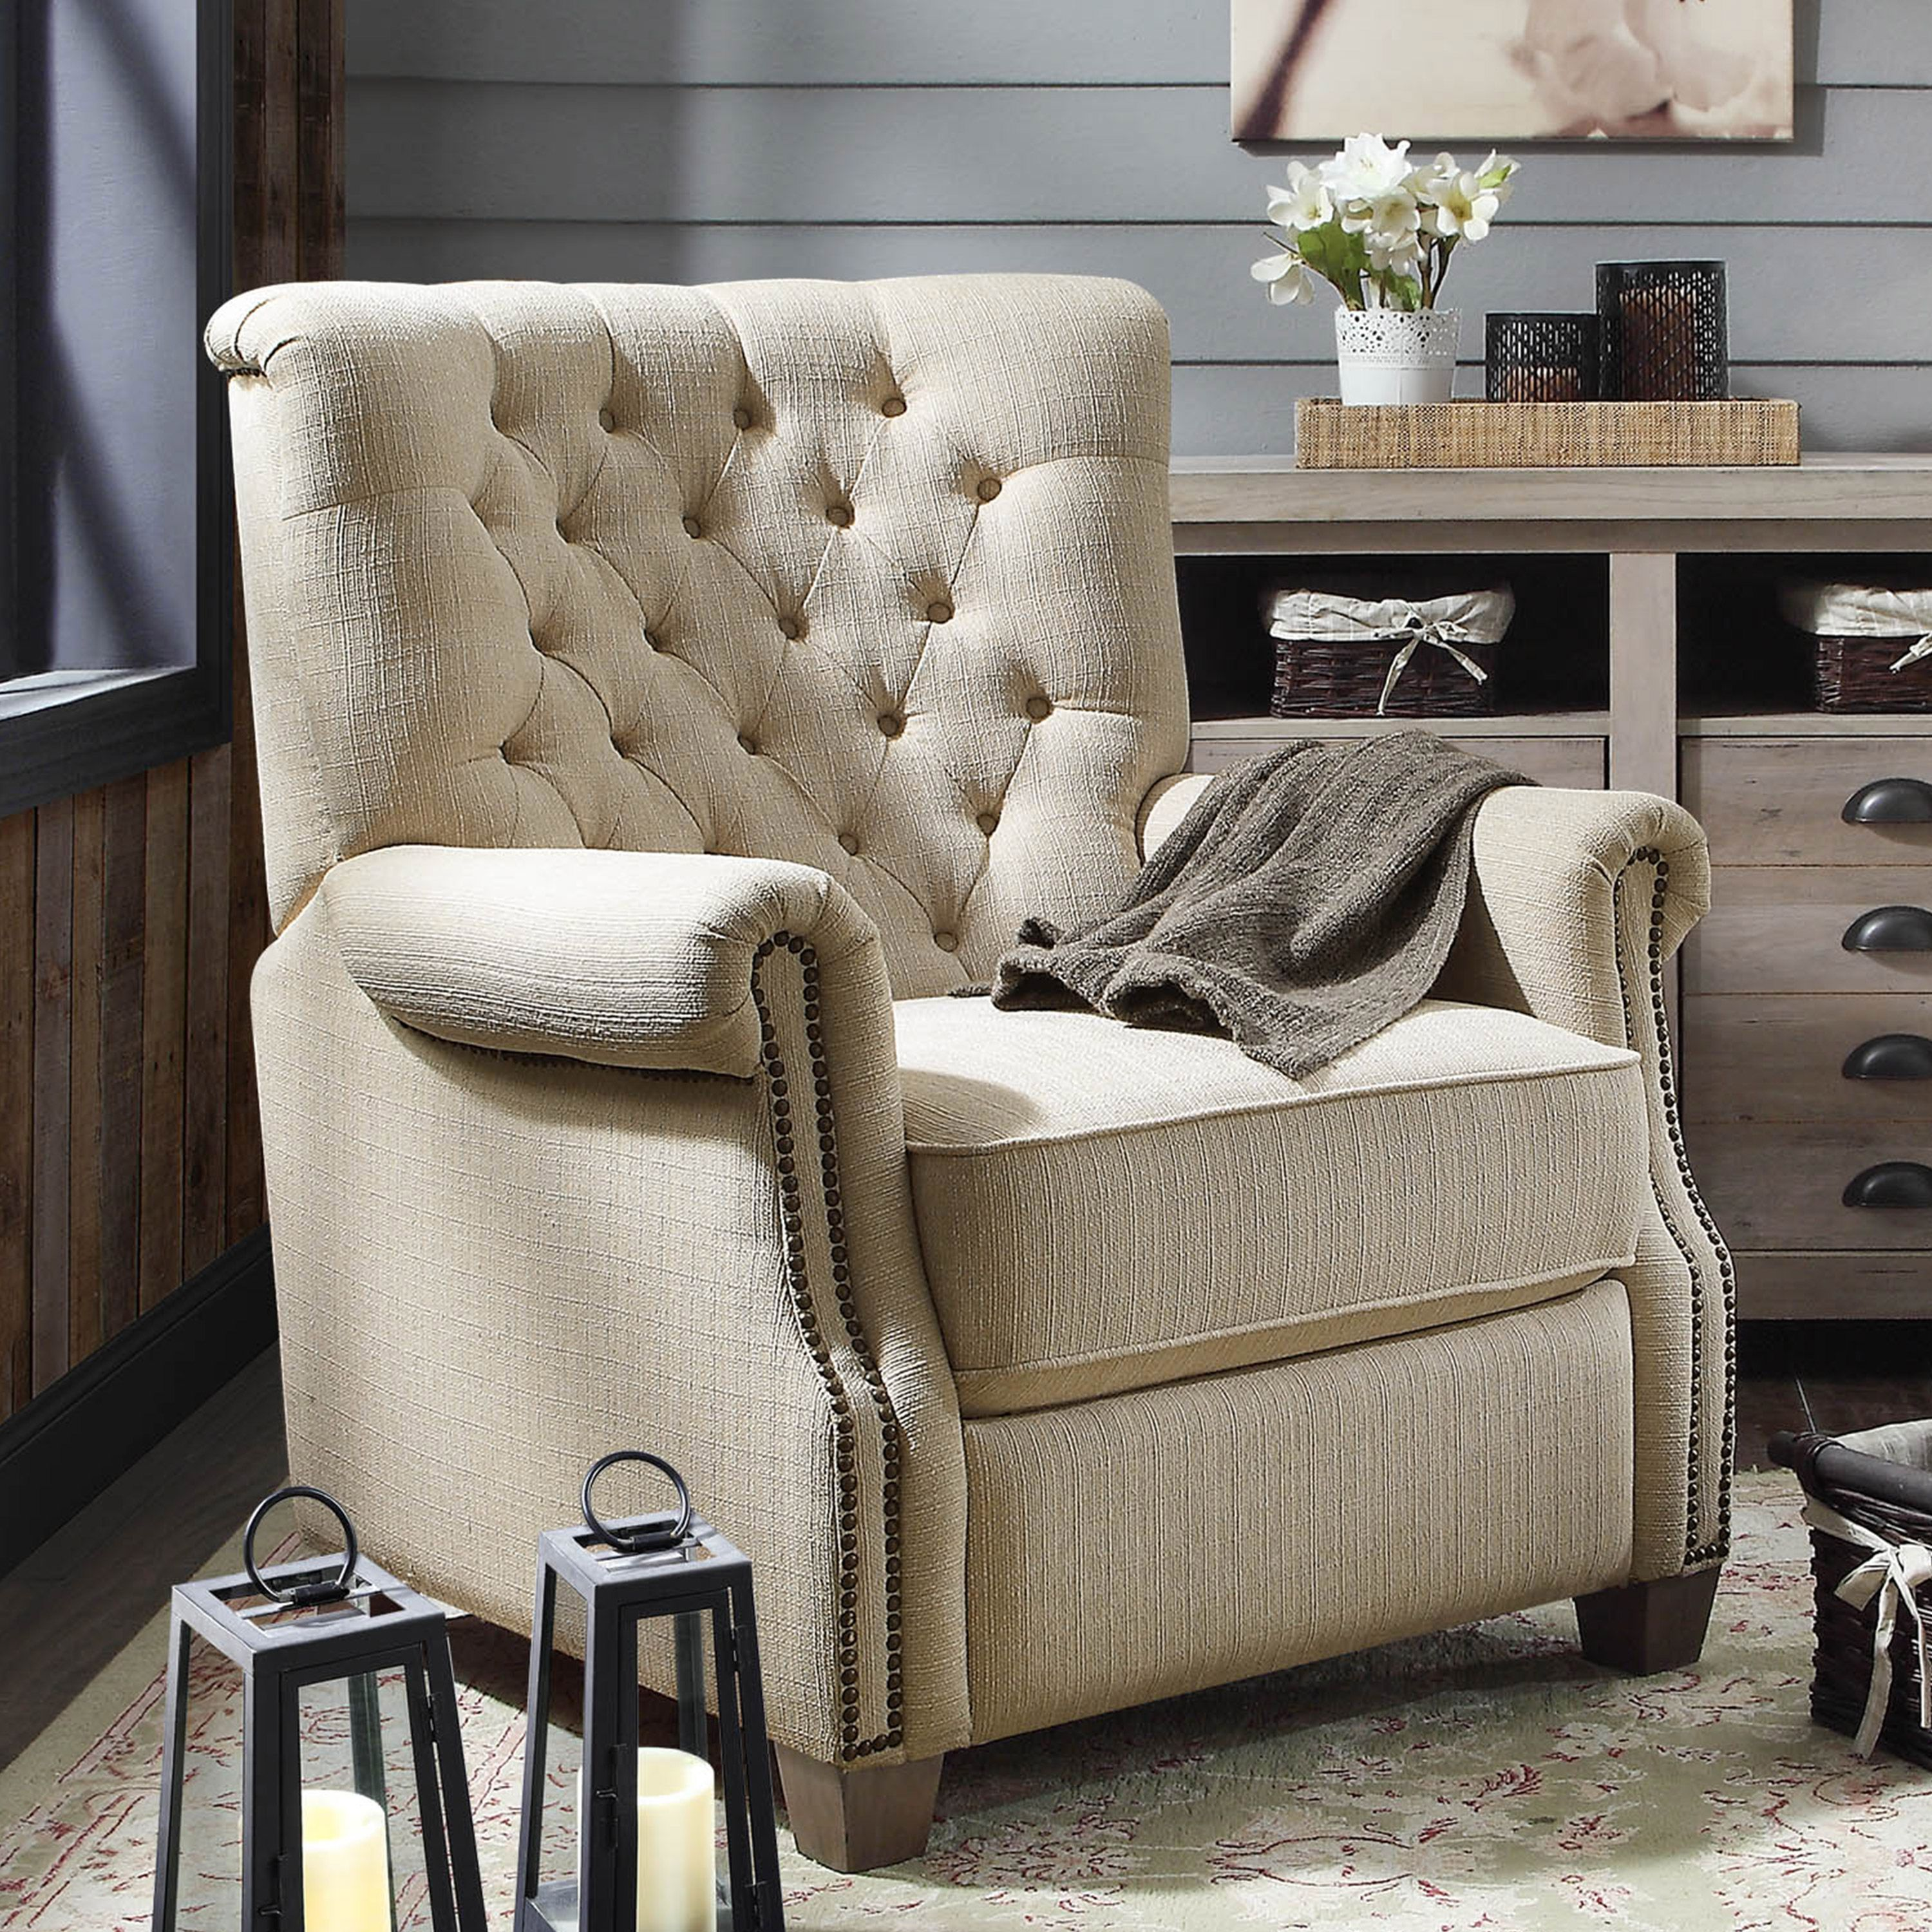 Buy Furniture Online Free Shipping: Free 2-day Shipping. Buy Better Homes & Garden Tufted Push